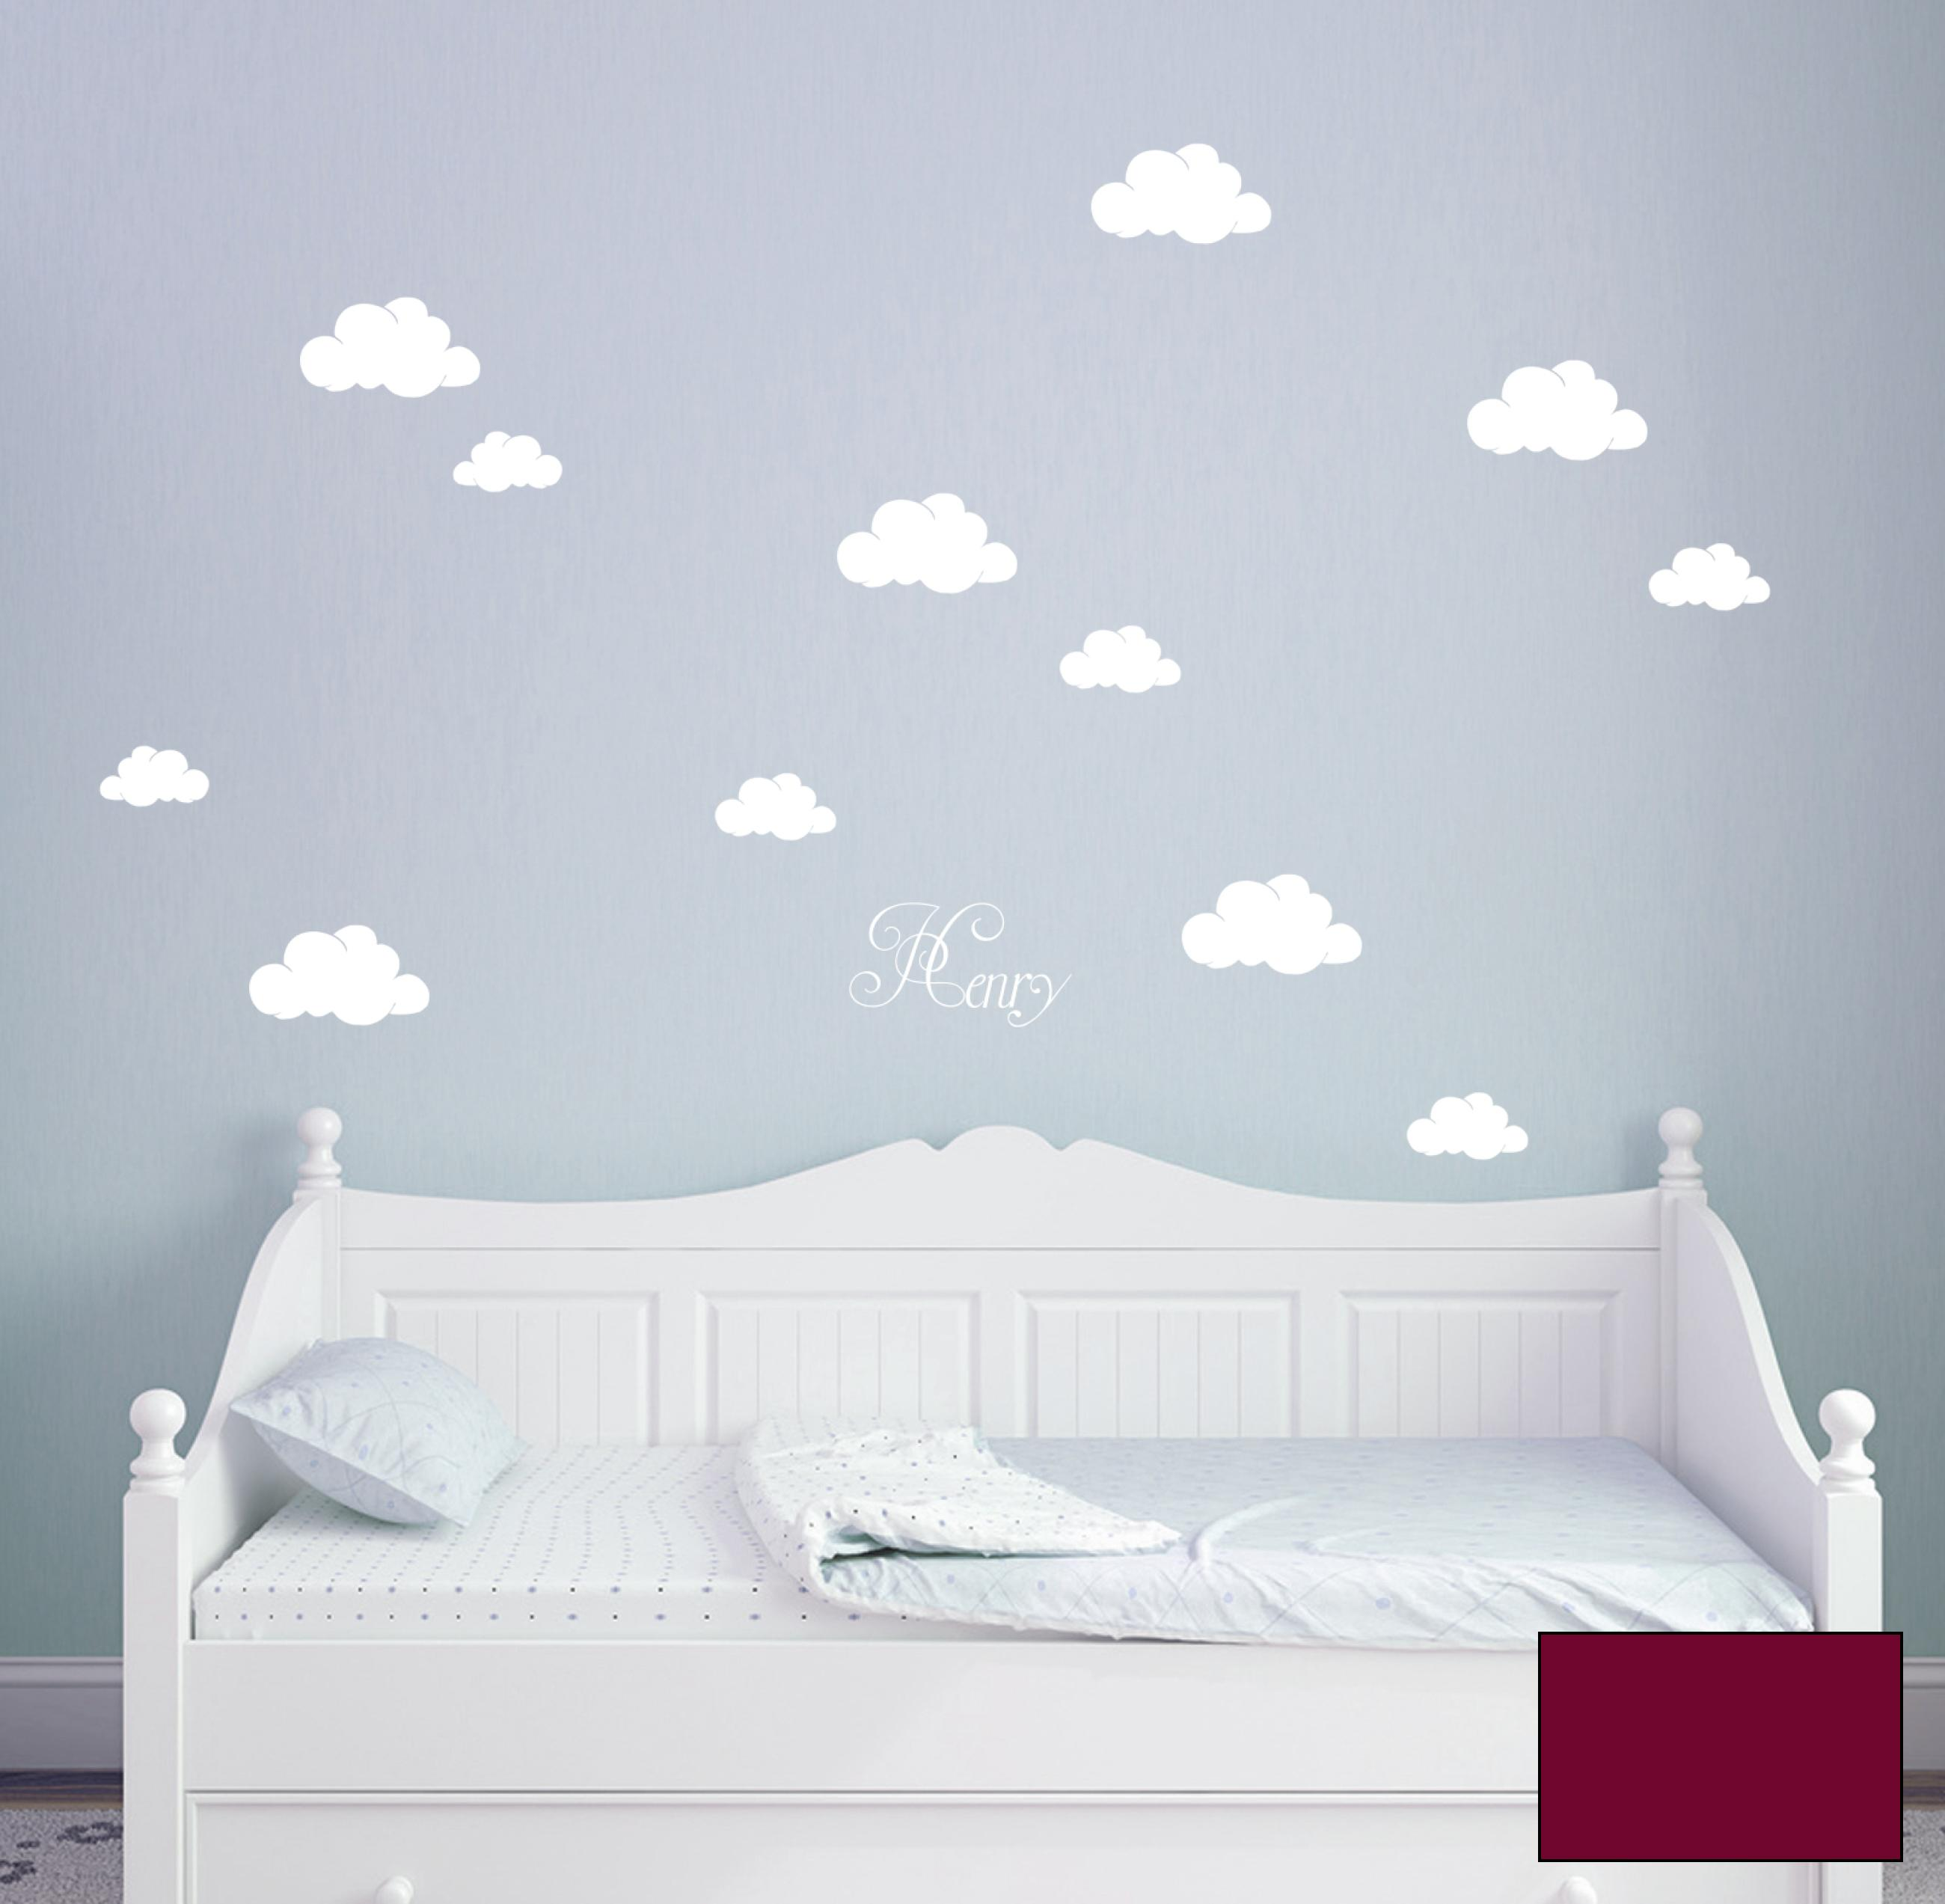 wandtattoo wolken w lkchen himmel mit namen m1682. Black Bedroom Furniture Sets. Home Design Ideas